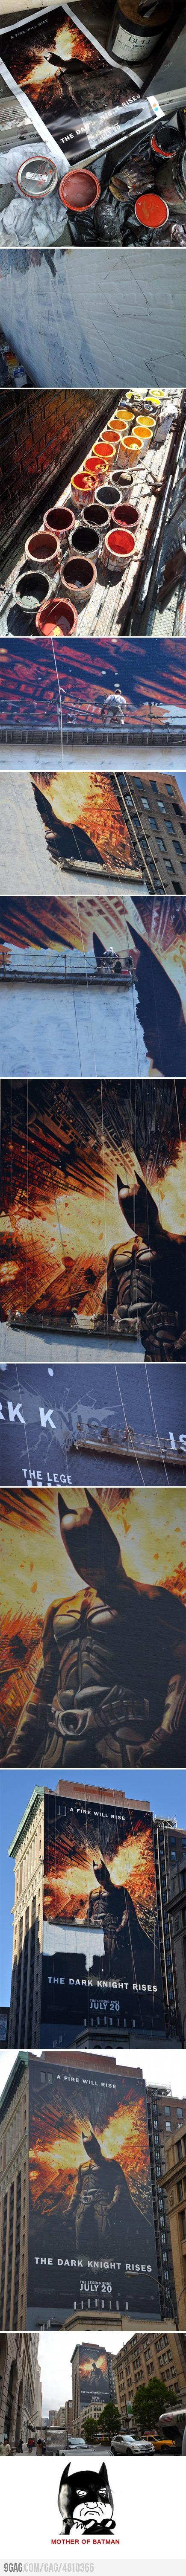 9GAG - Painting a 150-Foot tall Dark Knight Rises mural like a boss